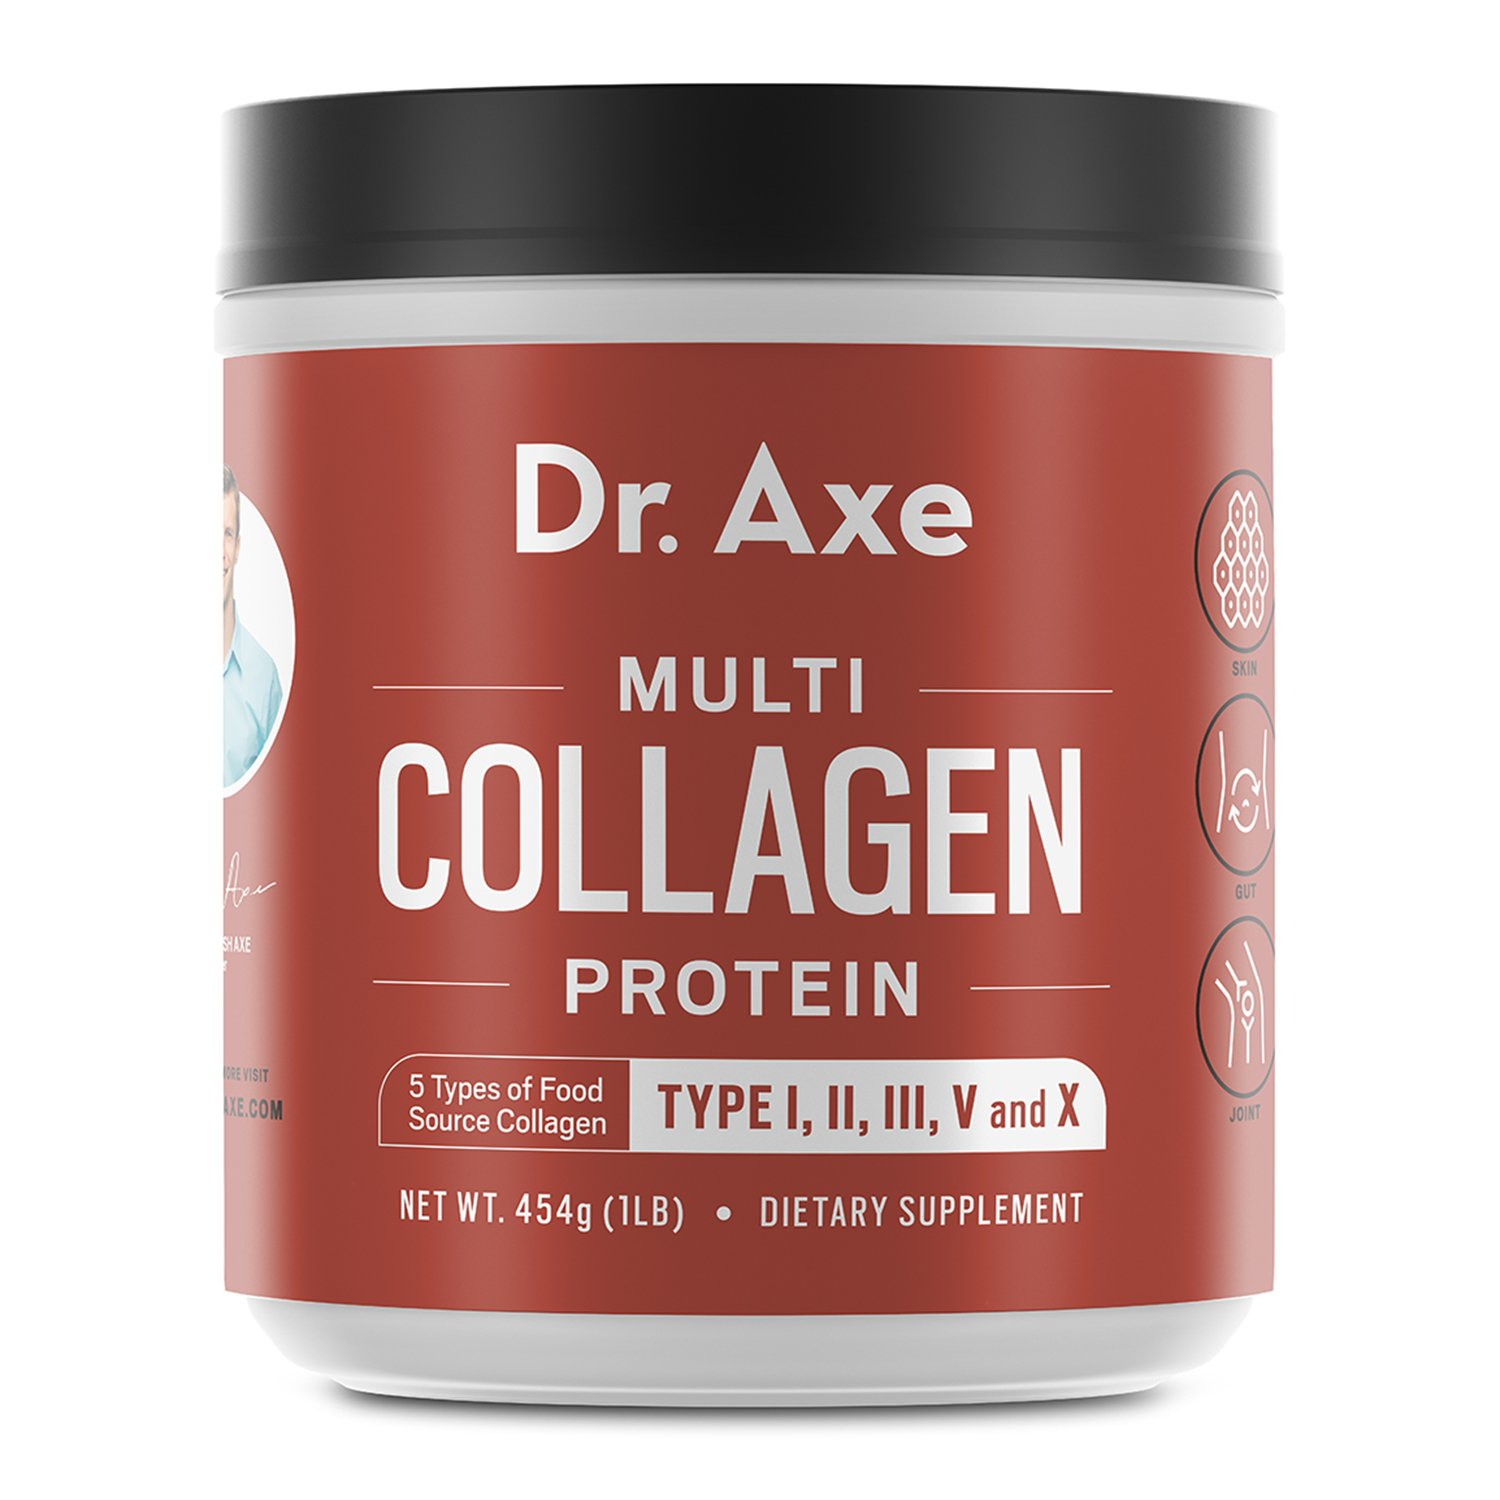 Dr. Axe Multi-Collagen Protein Powder - High-Quality Blend of Grass-Fed Beef, Chicken, Wild Fish and Eggshell Collagen Peptides, Providing Type I, II, III, V and X - Formerly Dr. Collagen